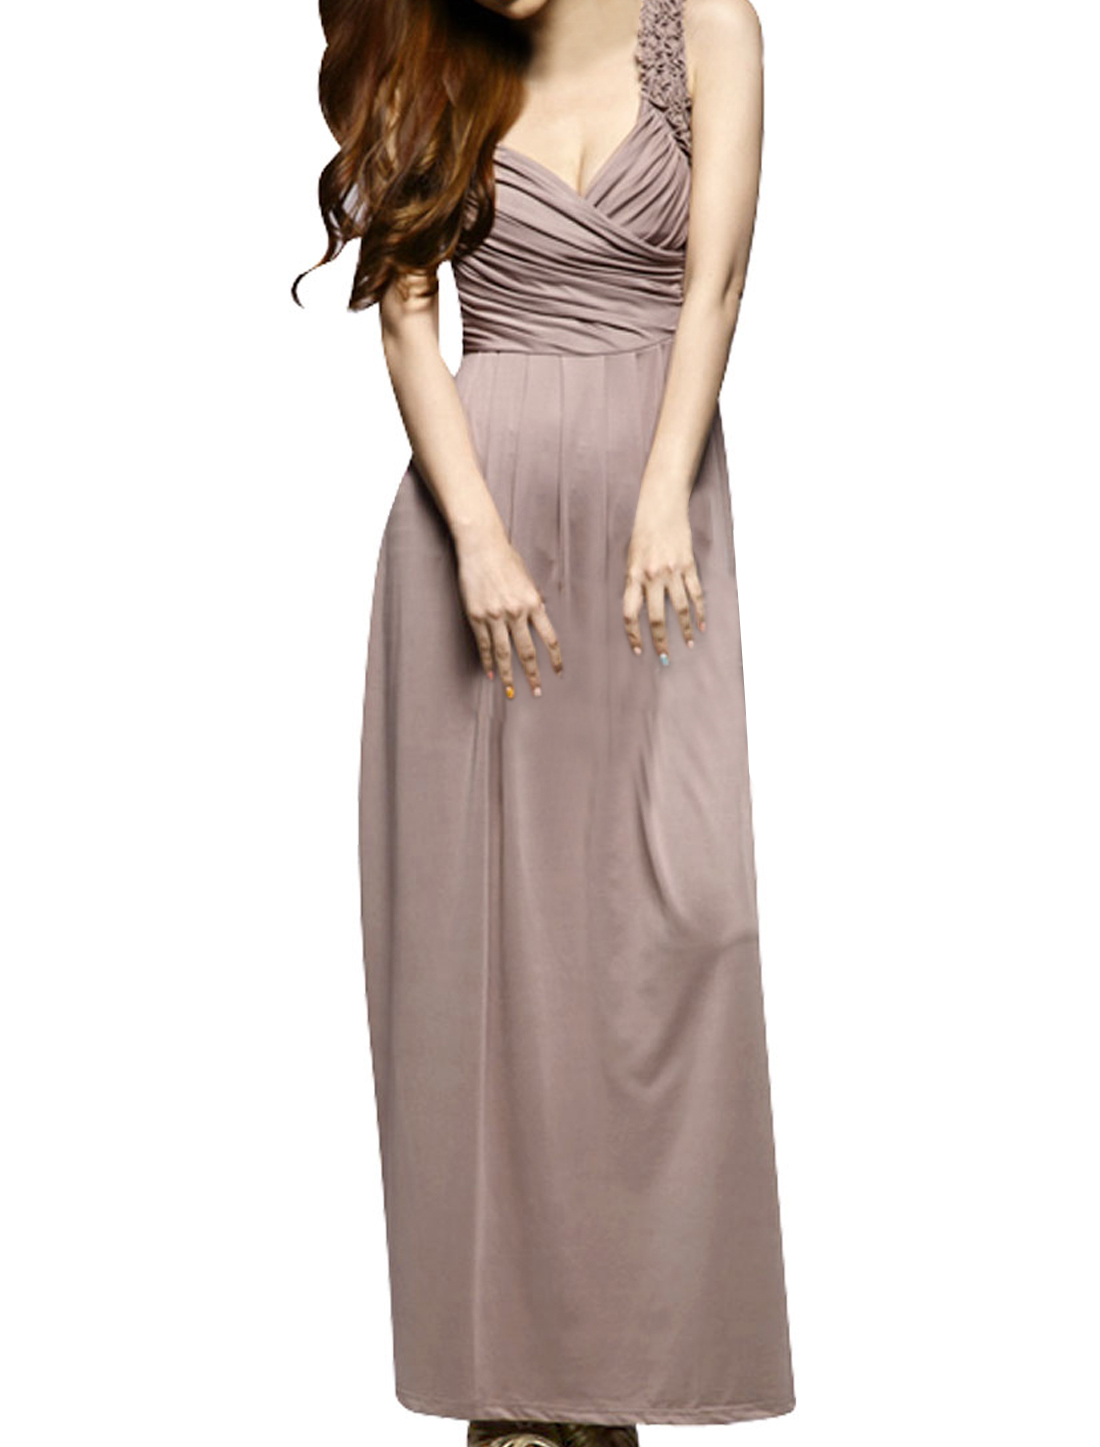 Lady Khaki Sleeveless Crossover V Neck Low-Cut Maxi Dress S